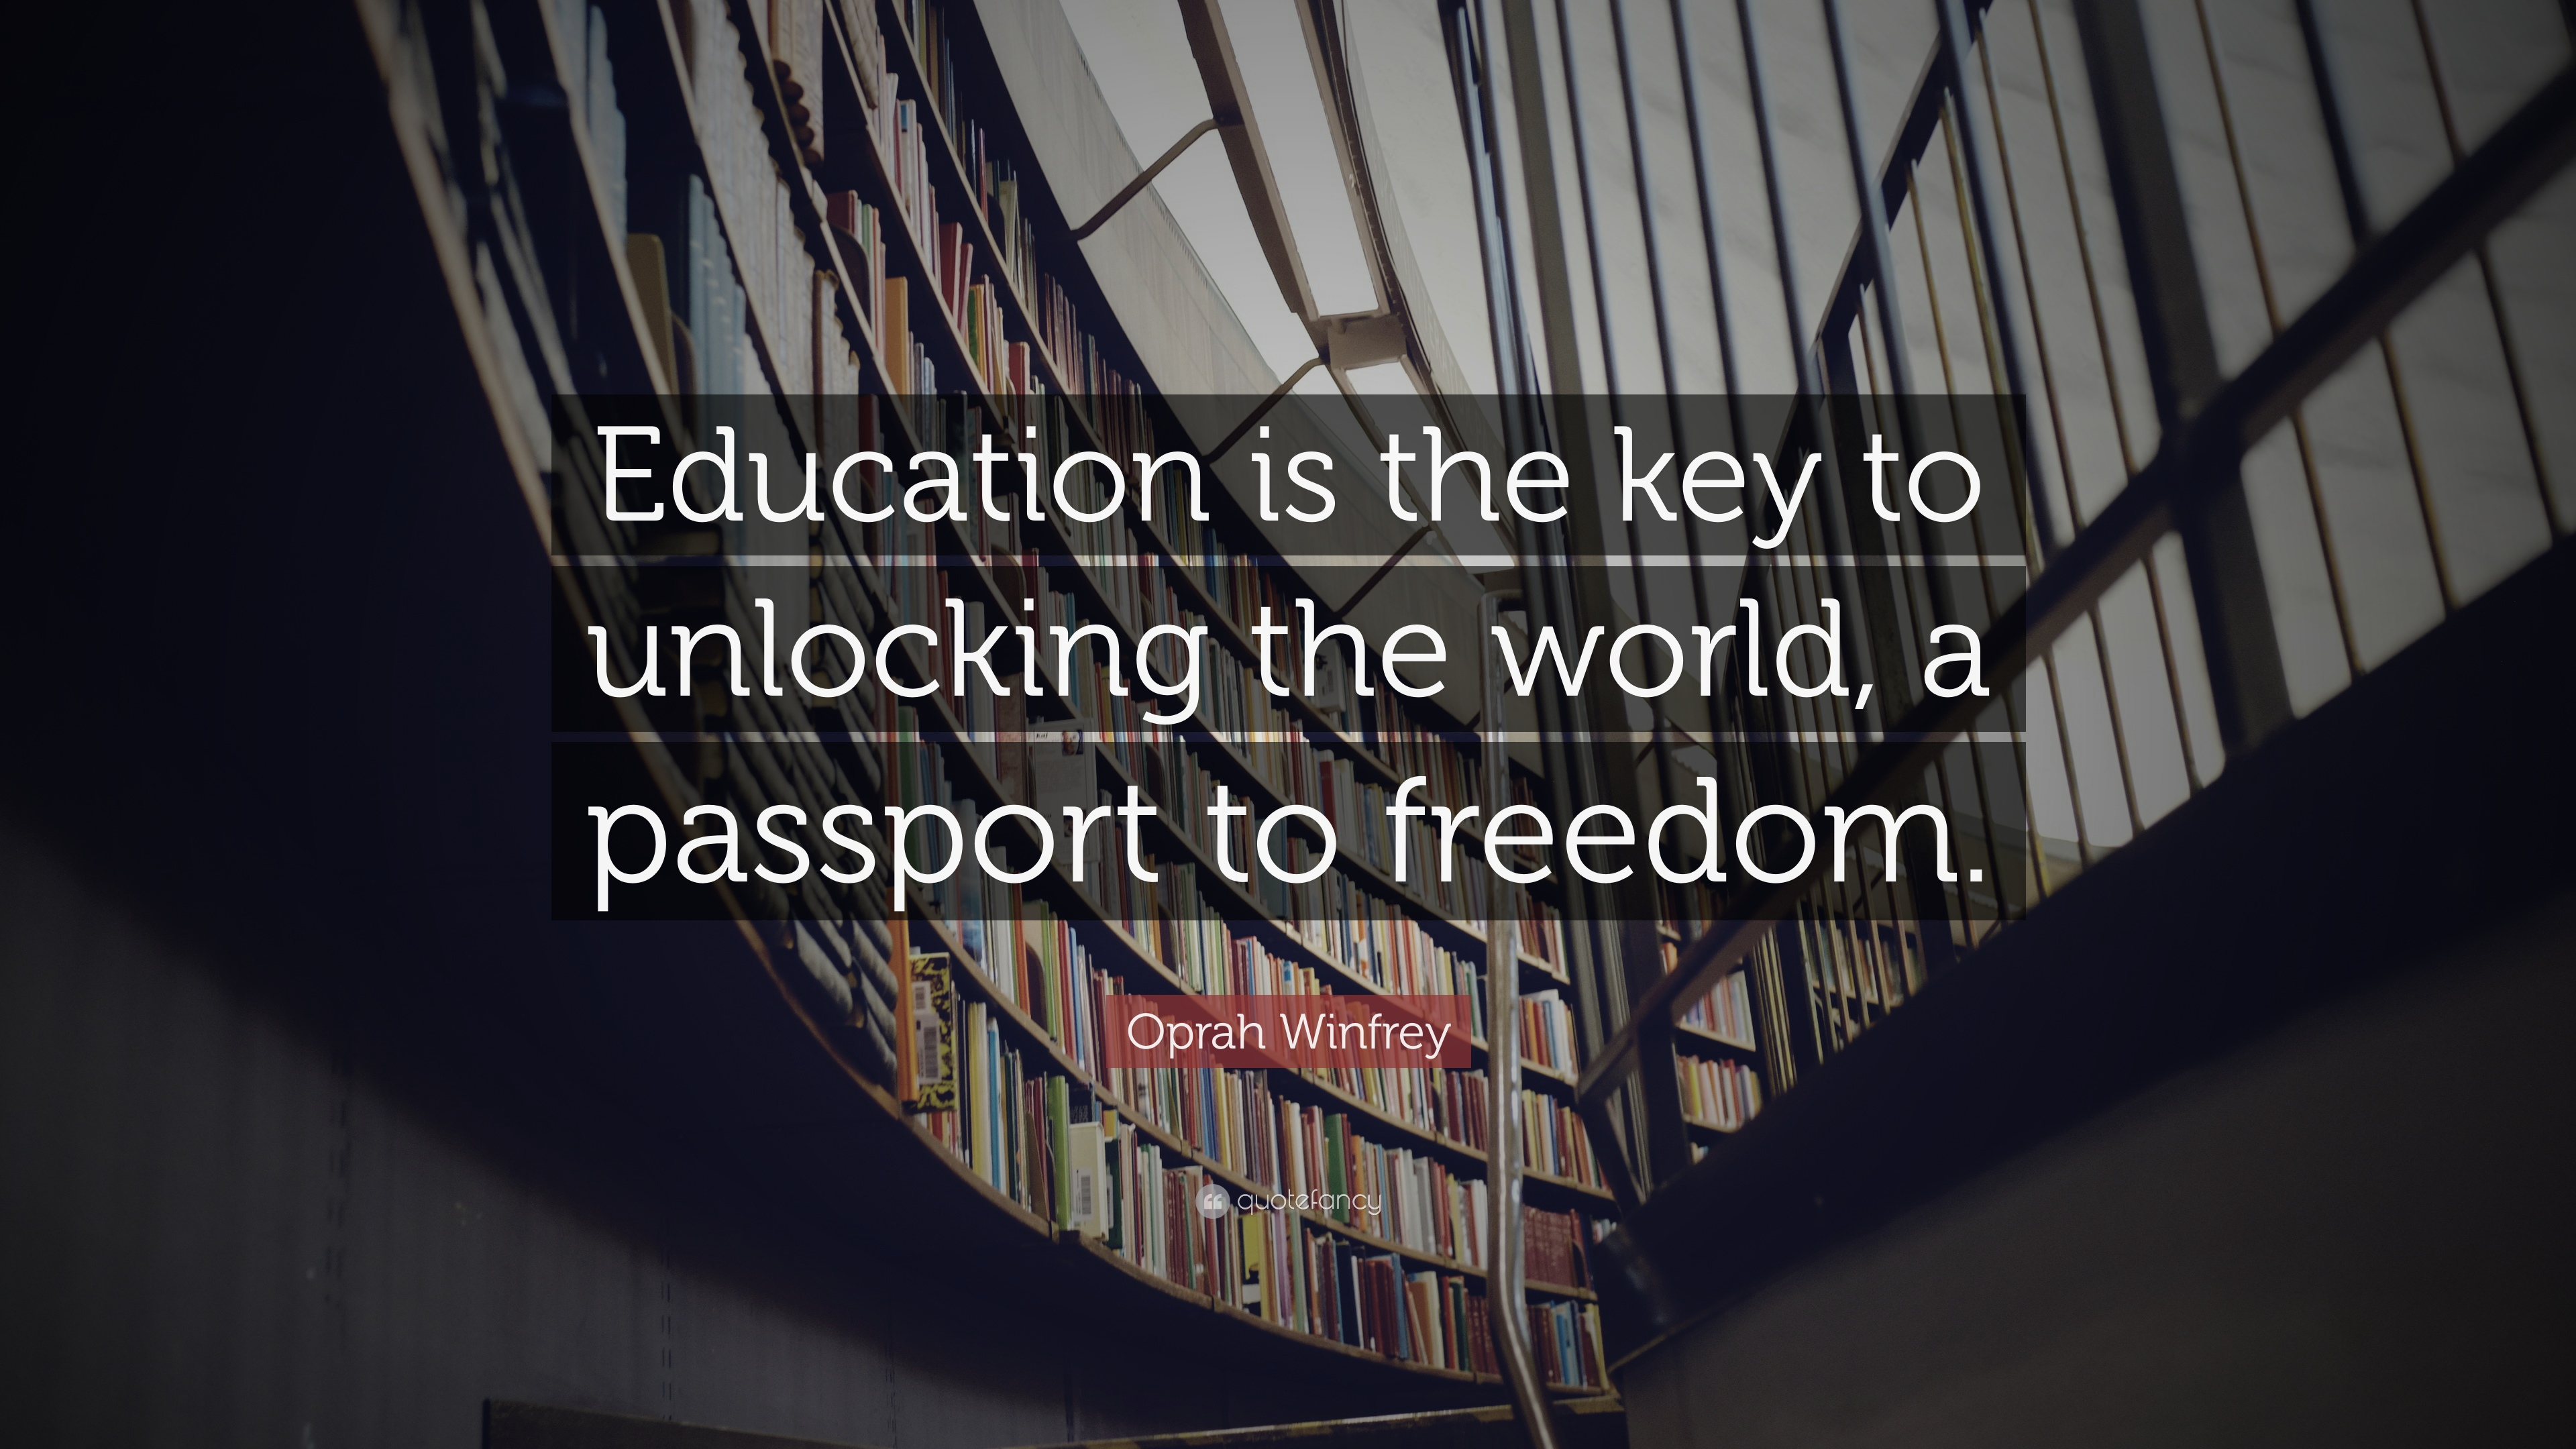 Oprah Winfrey Quotes On Education Tumblr thumbnail